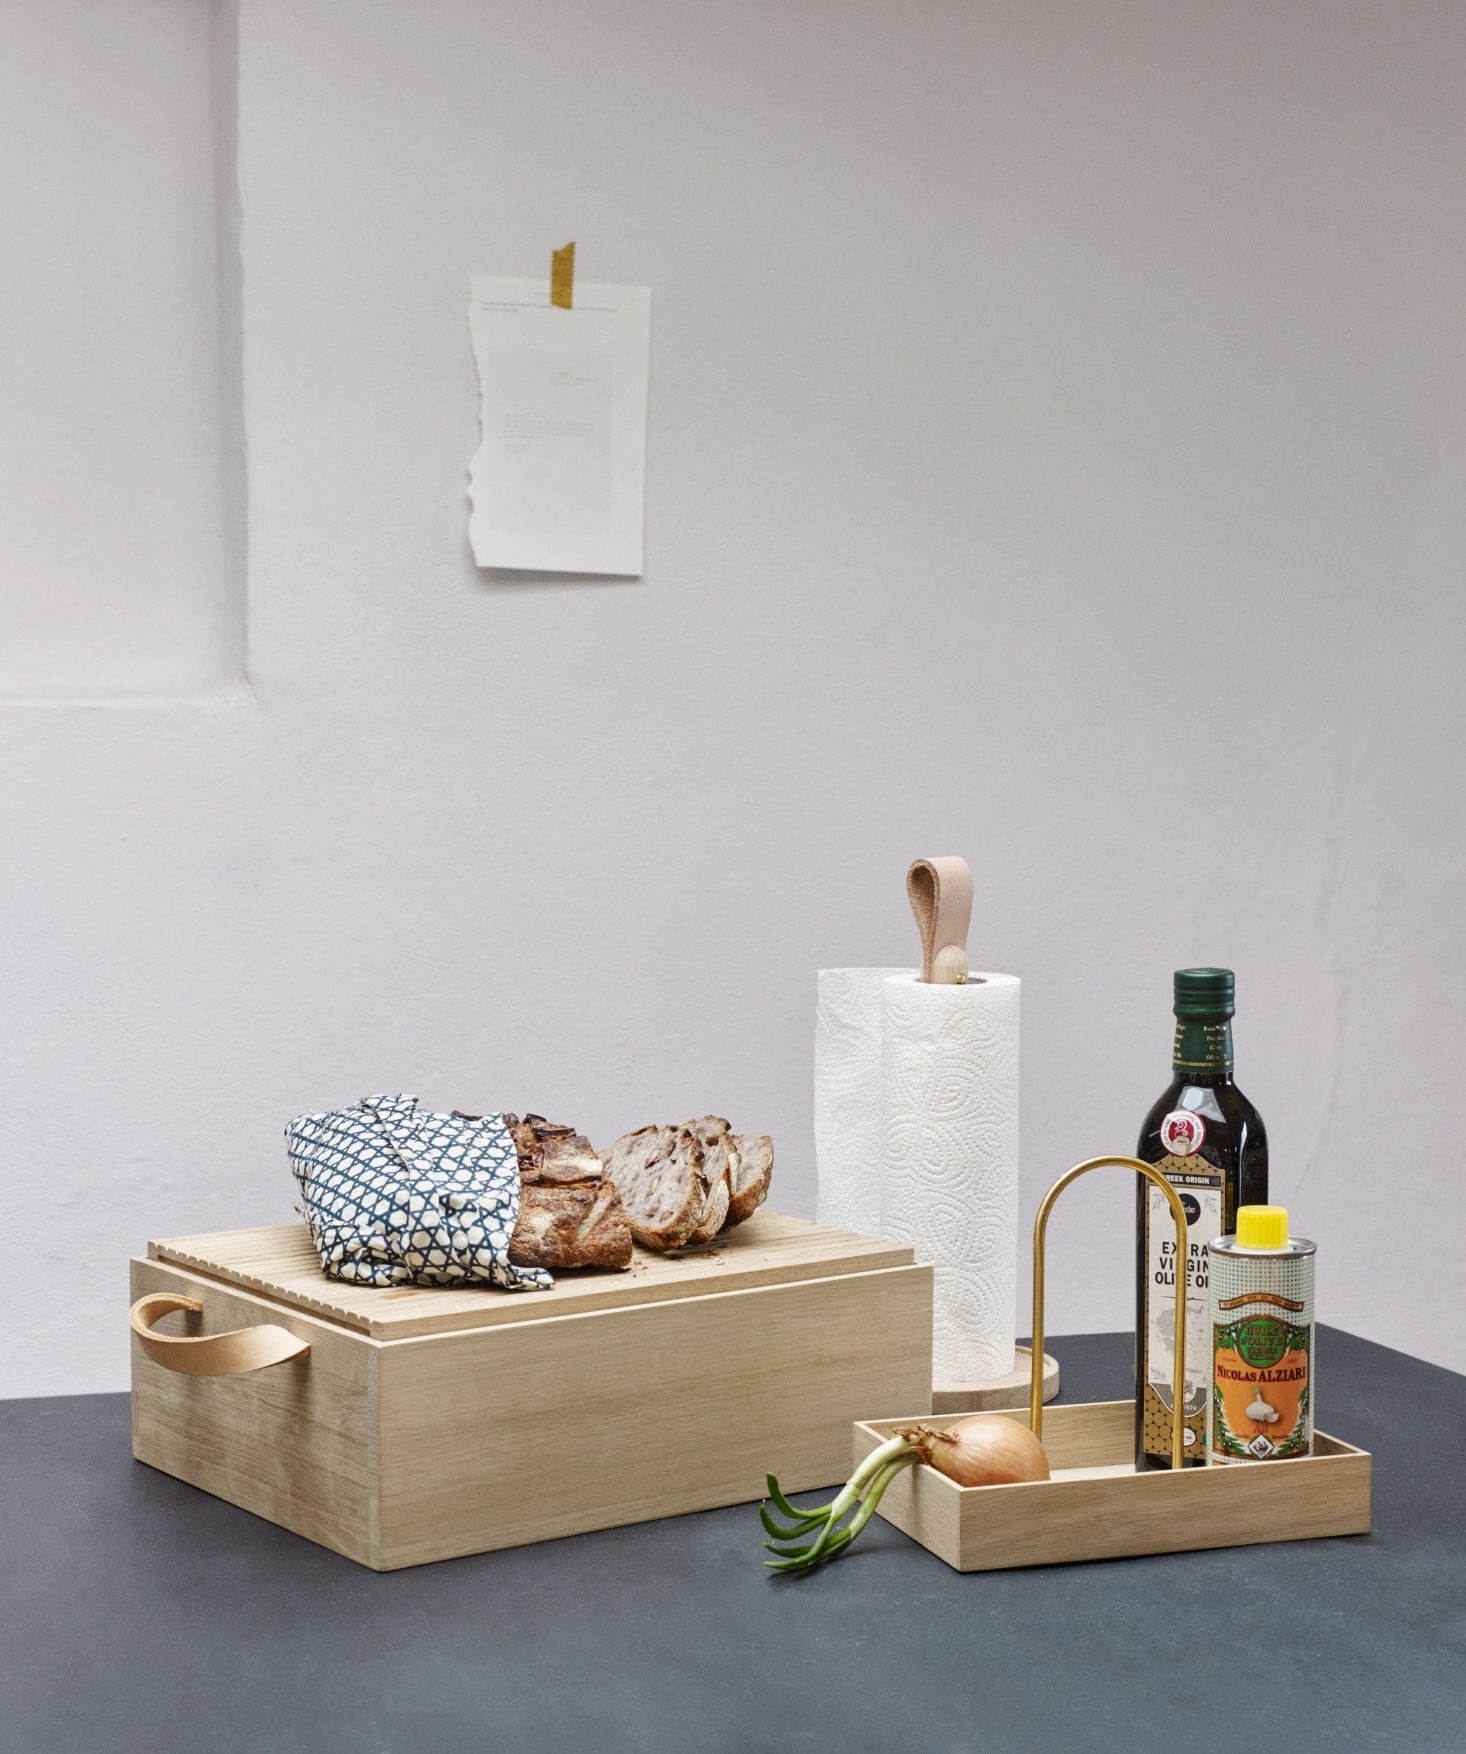 Trending On The Organized Home Into The Woods Cajas De Pan Interior Nordico Madera